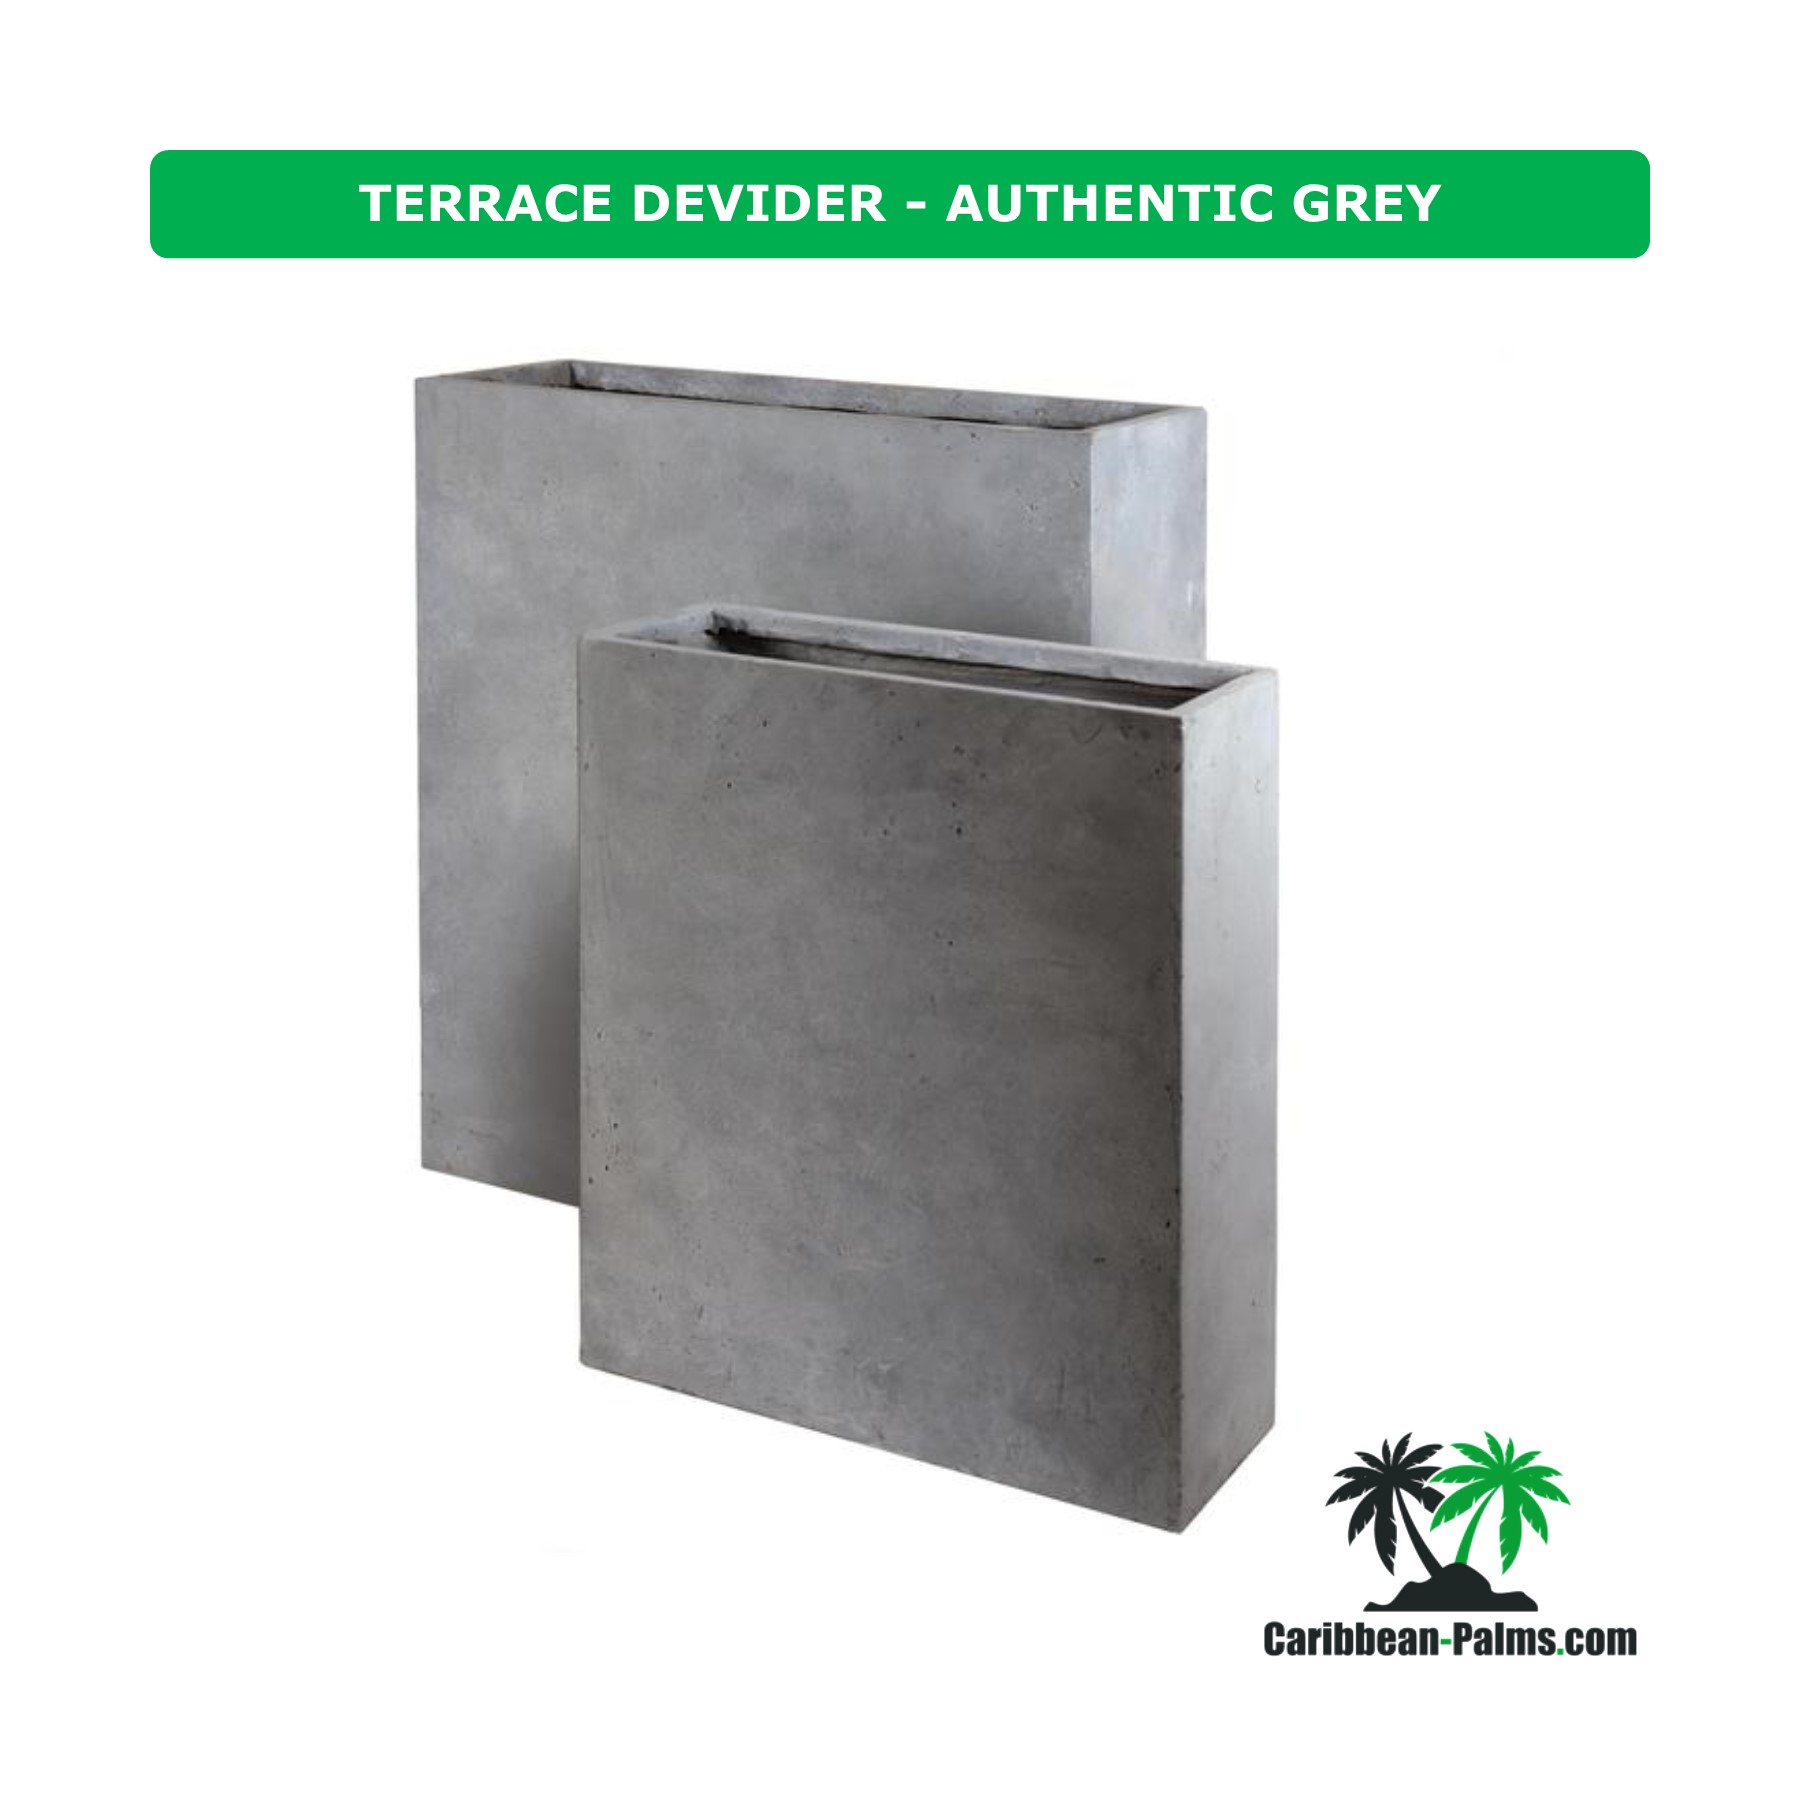 TERRACE DEVIDER AUTHENTIC GREY